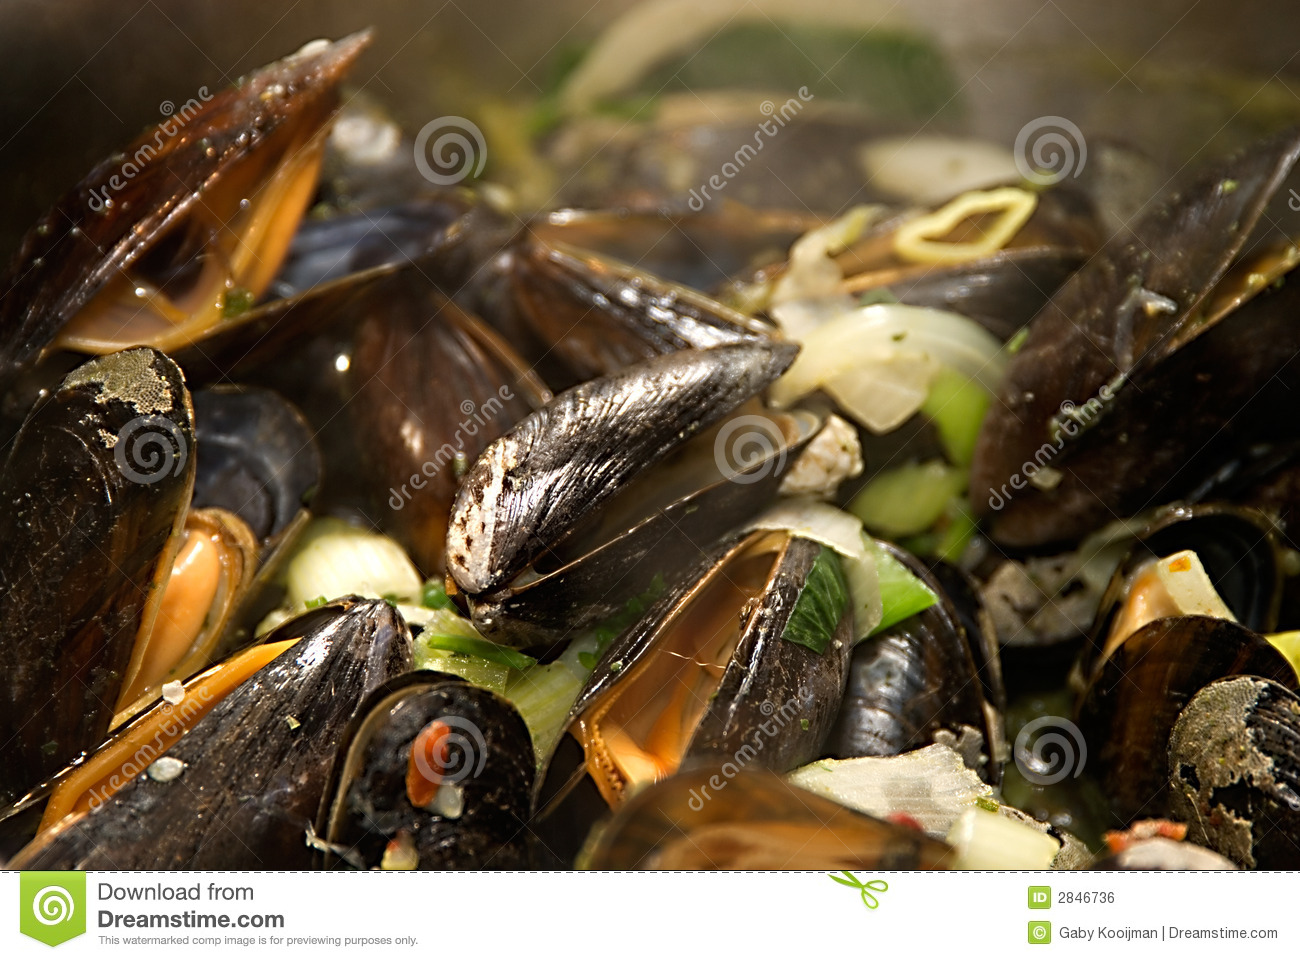 how to catch mussels in the sea